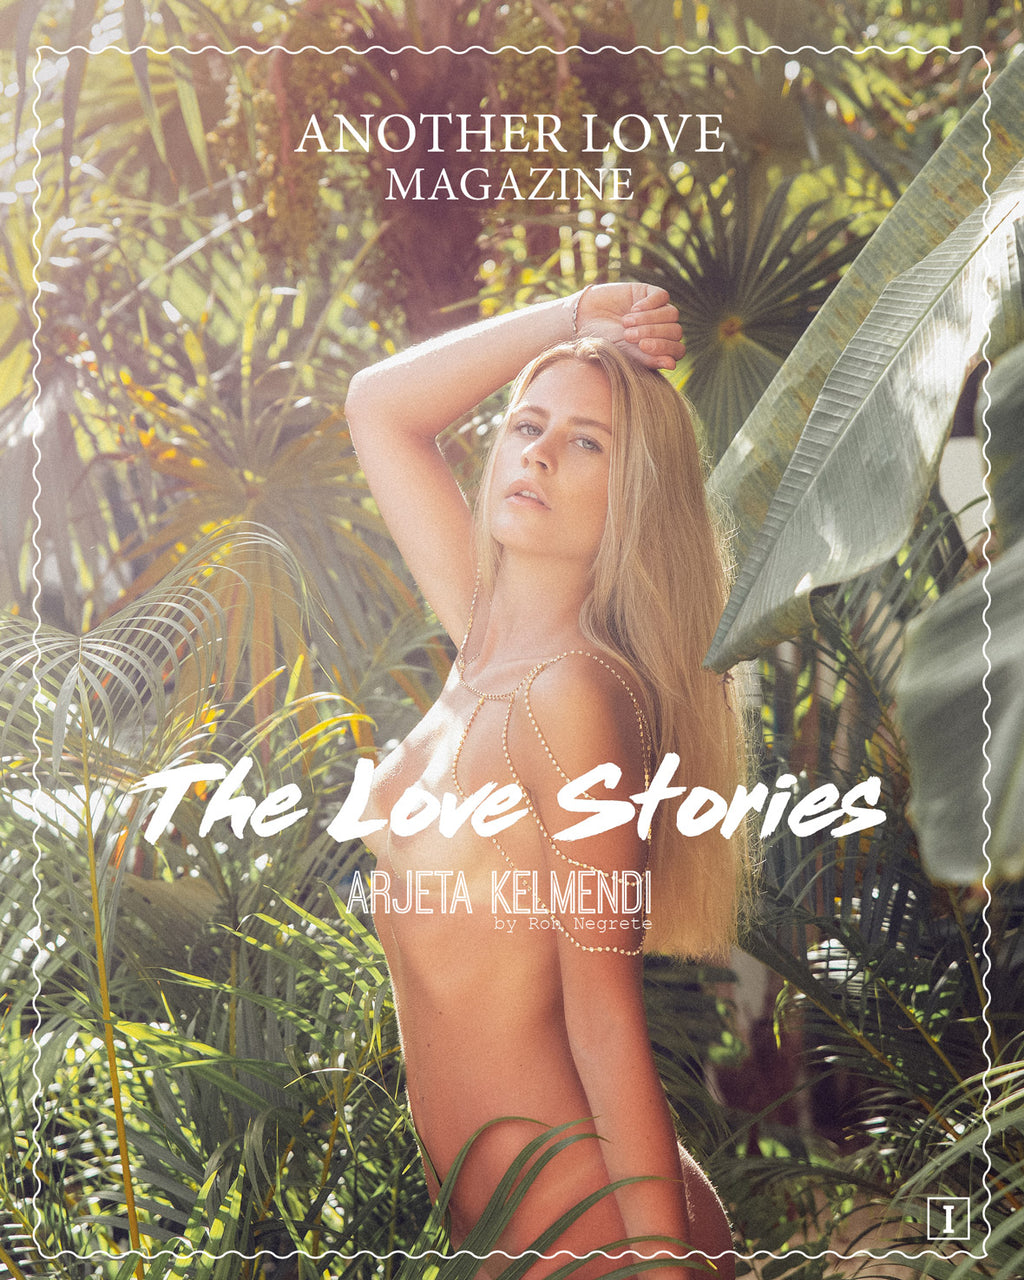 ALM The Love Stories - Arjeta Kelmendi I